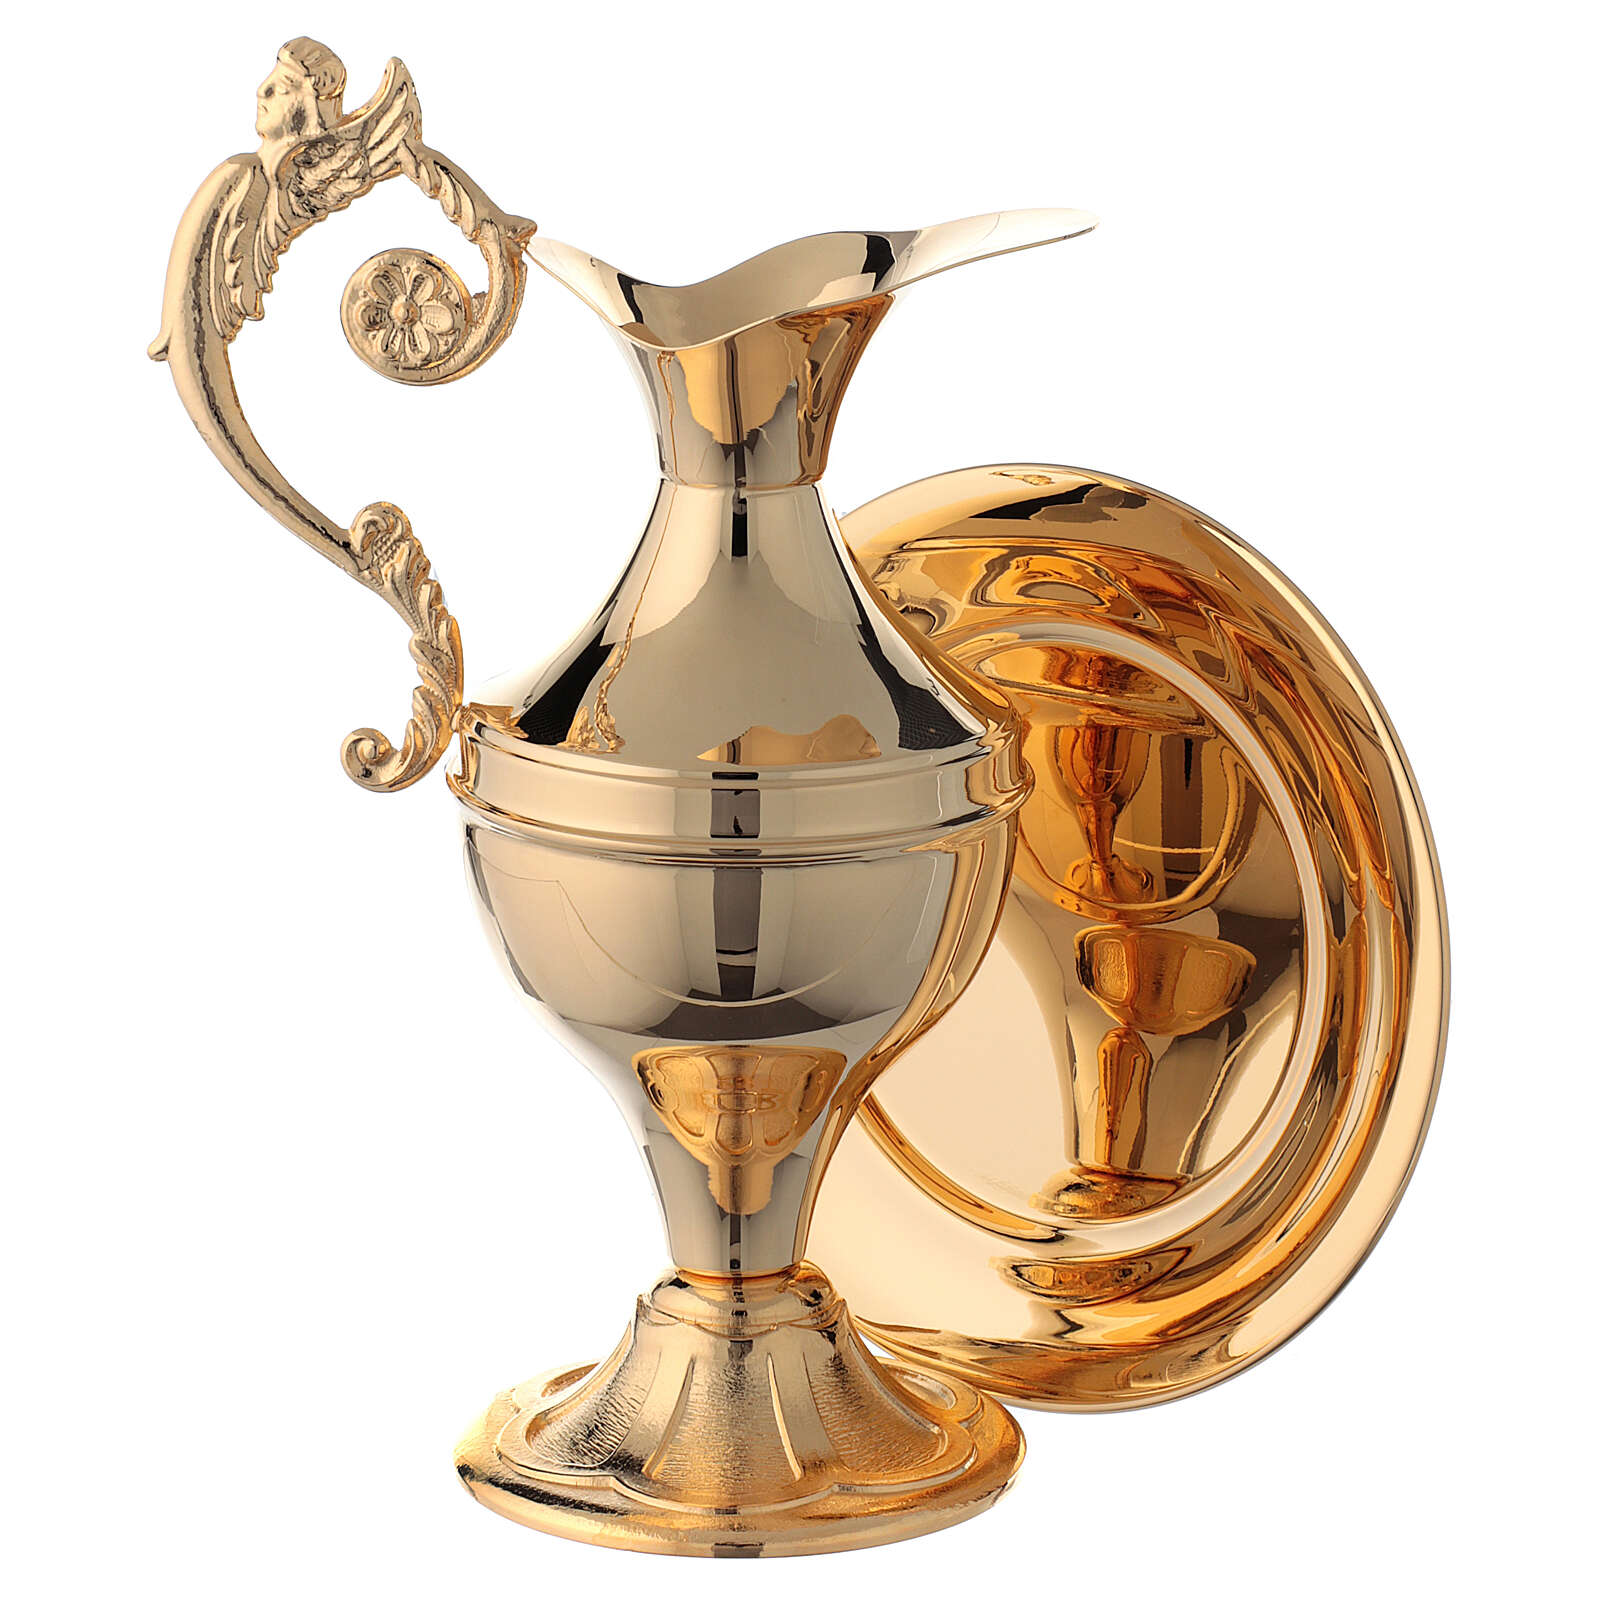 Gold plated brass ewer for hand washing ritual 3